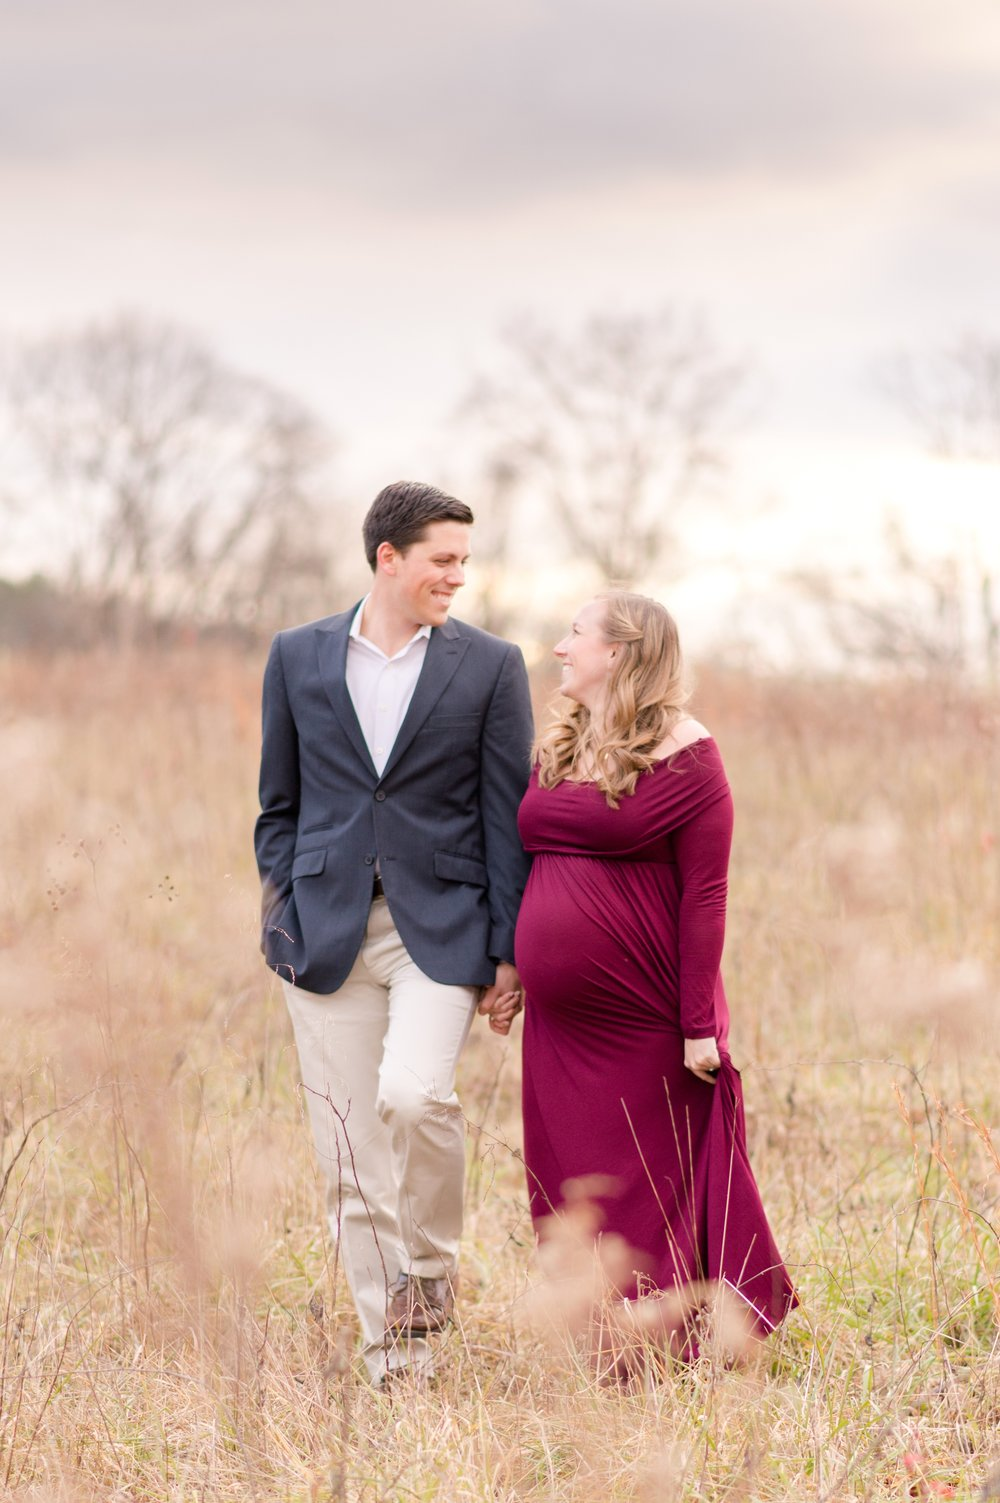 AG and Kevin Maternity-298_anna grace photography baltimore maryland maternity photographer cromwell valley park photo.jpg